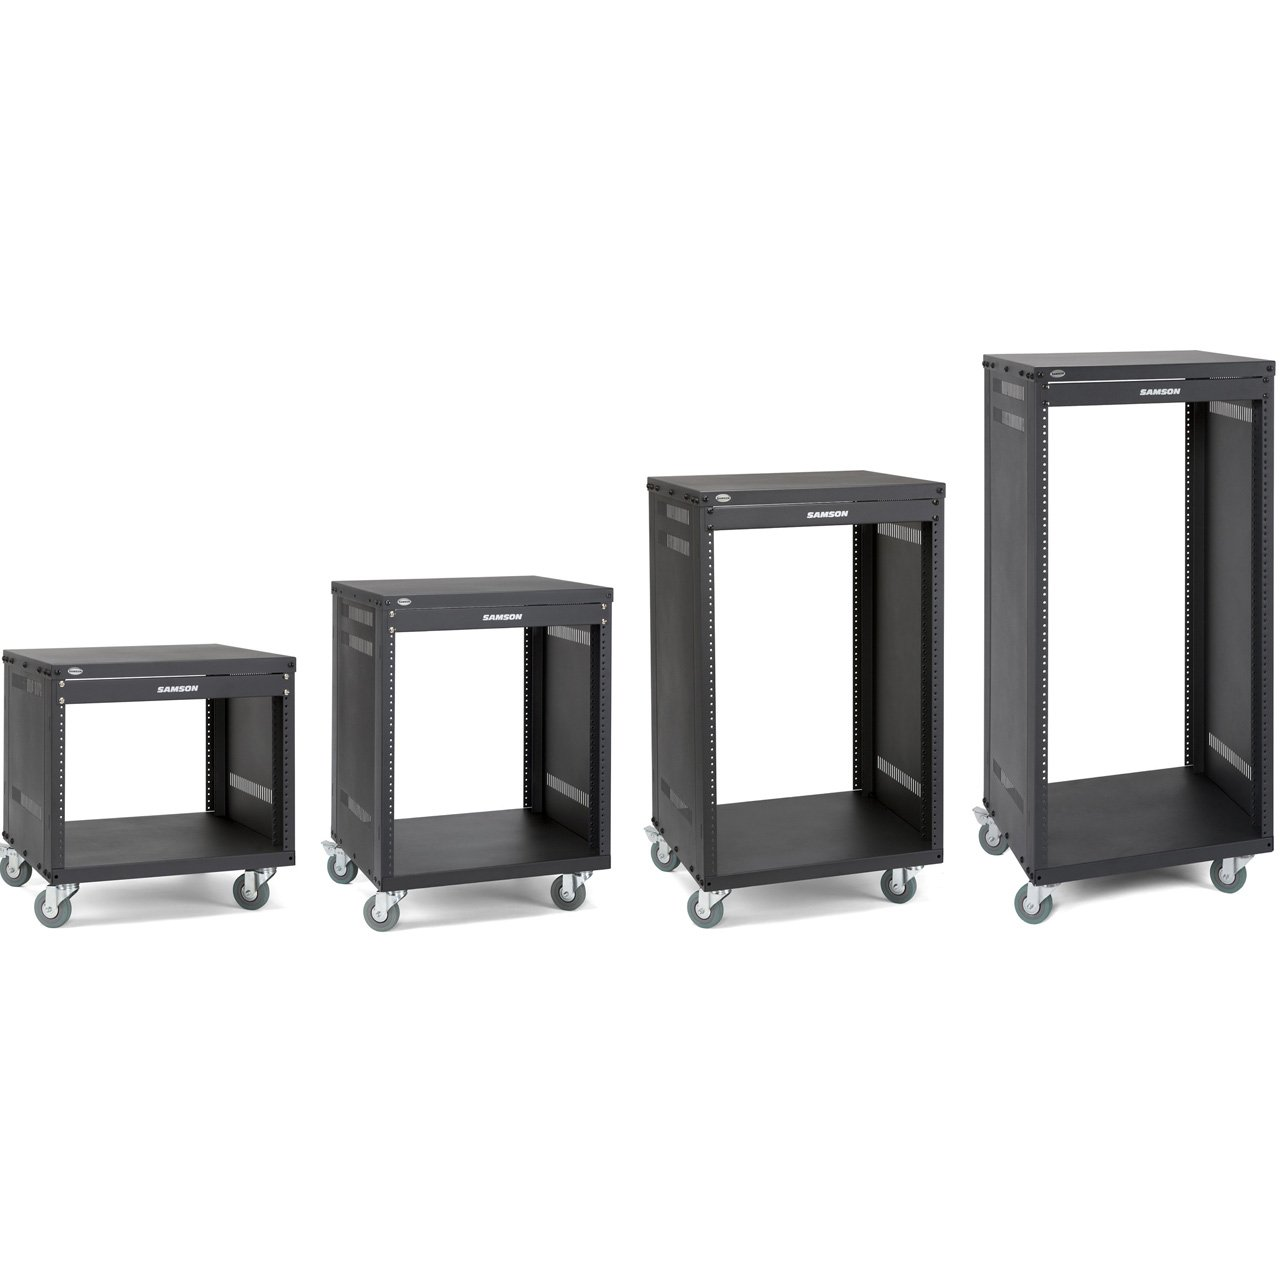 Outboard Accessories - Samson SRK Racks - Universal Equipment Racks